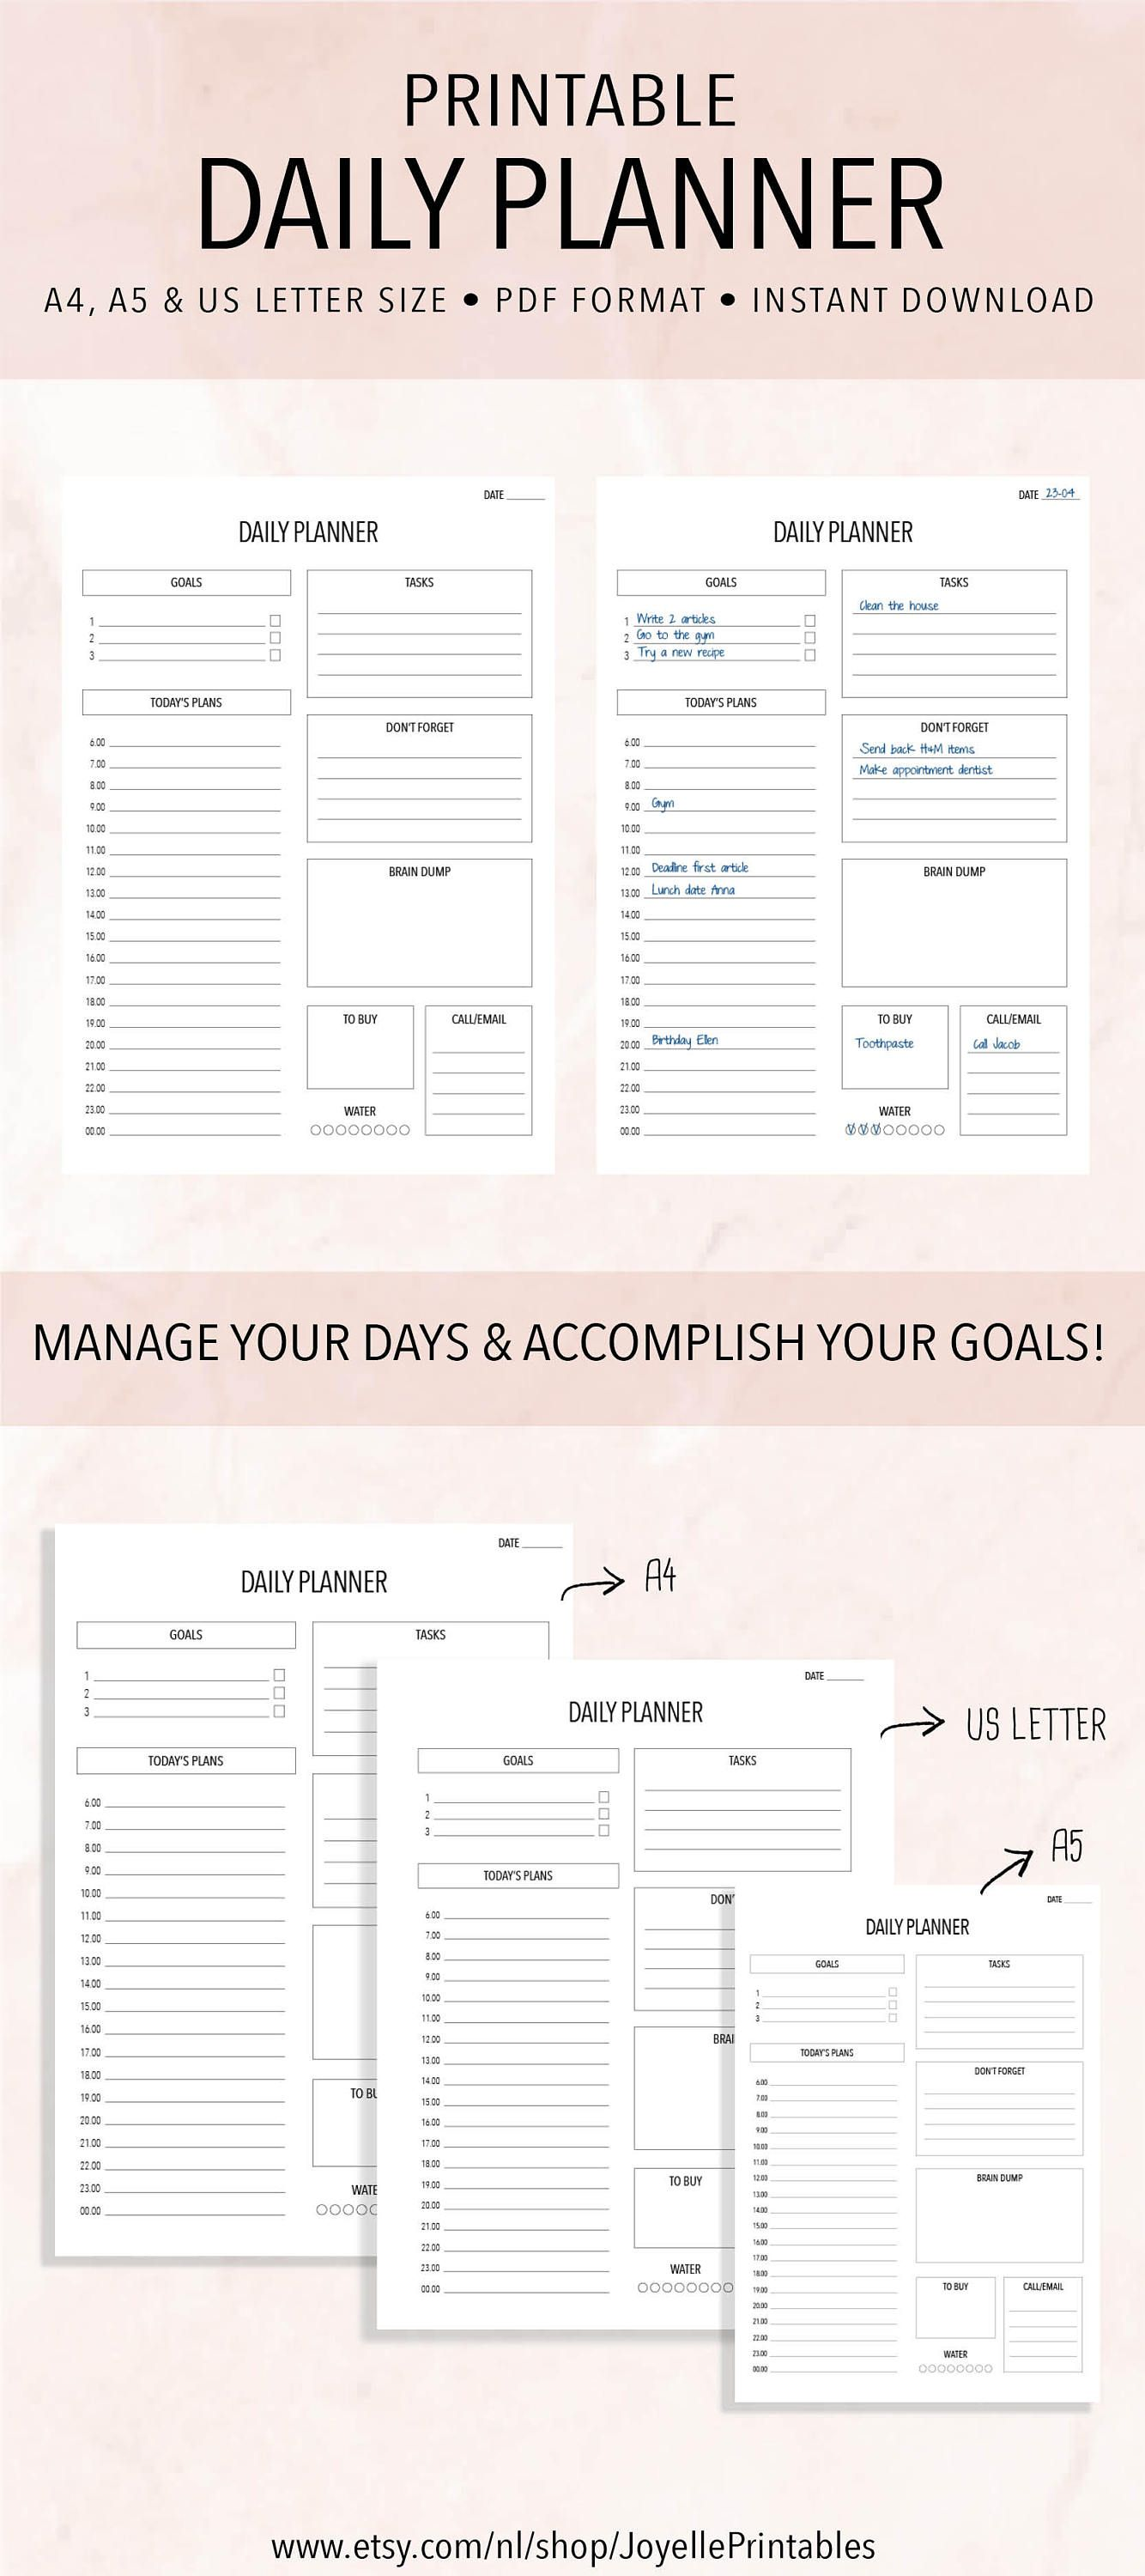 printable daily planner work planner this planner will help you organize your days and